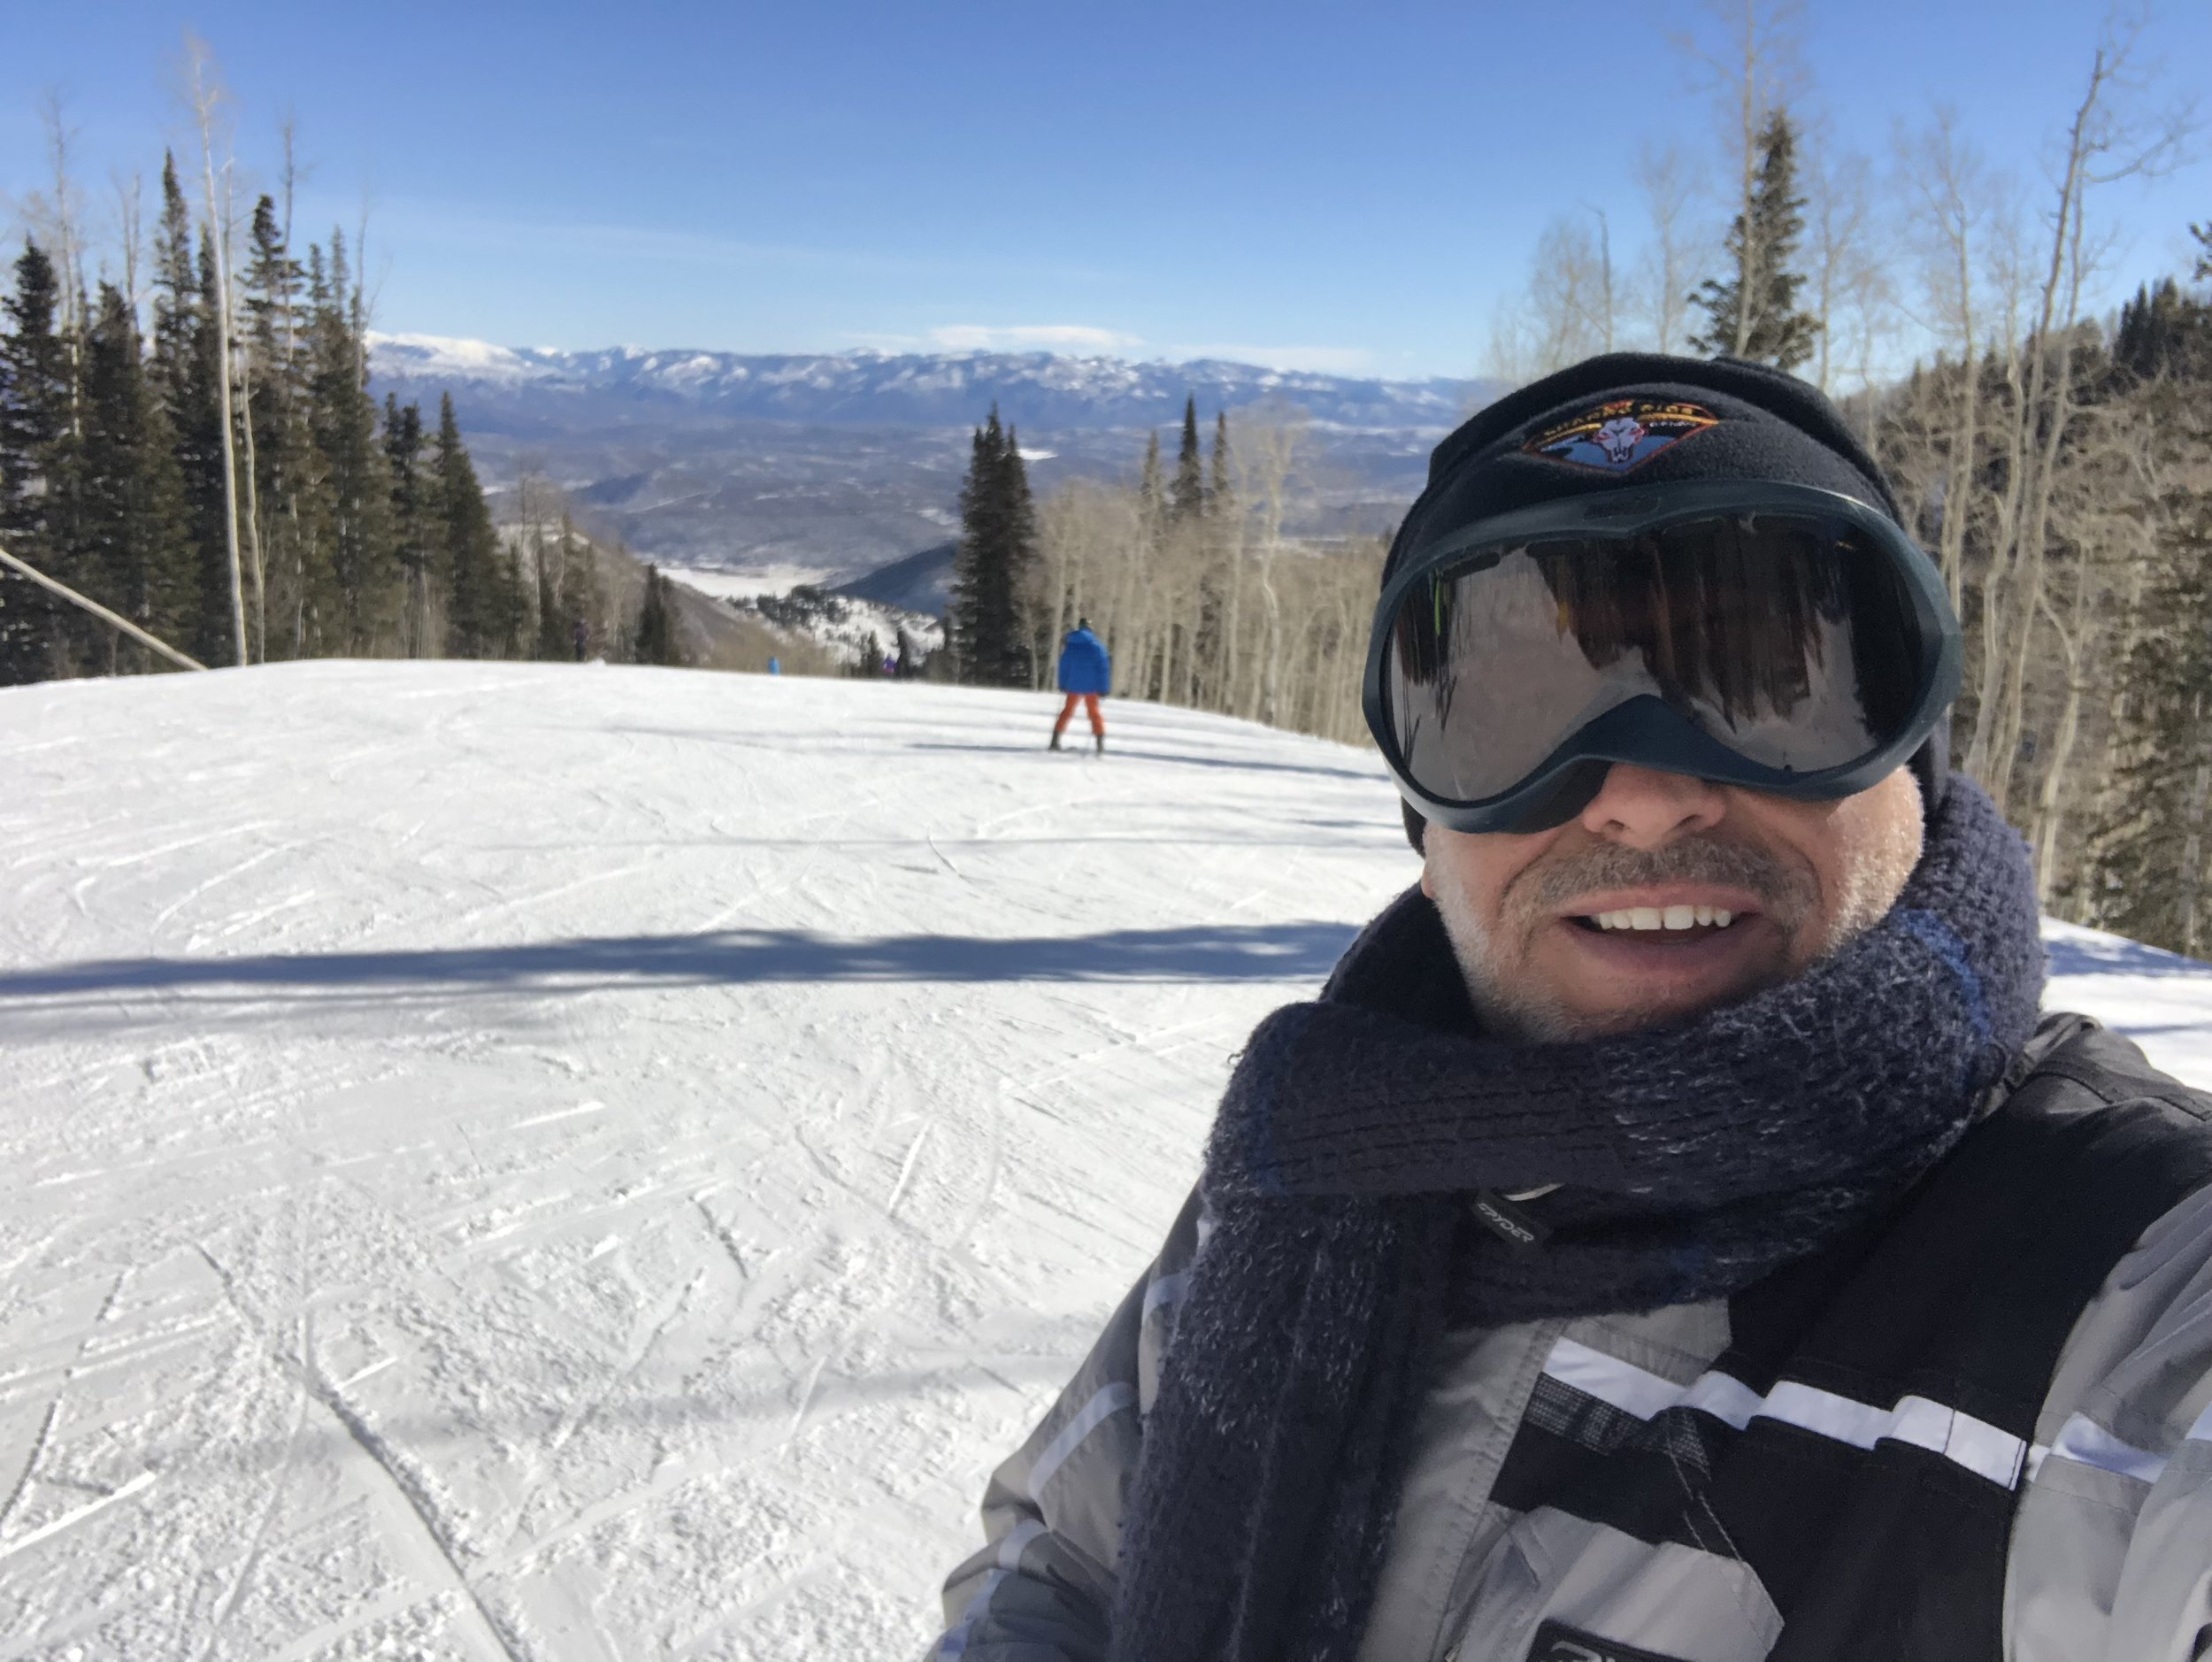 On the slopes in Park City